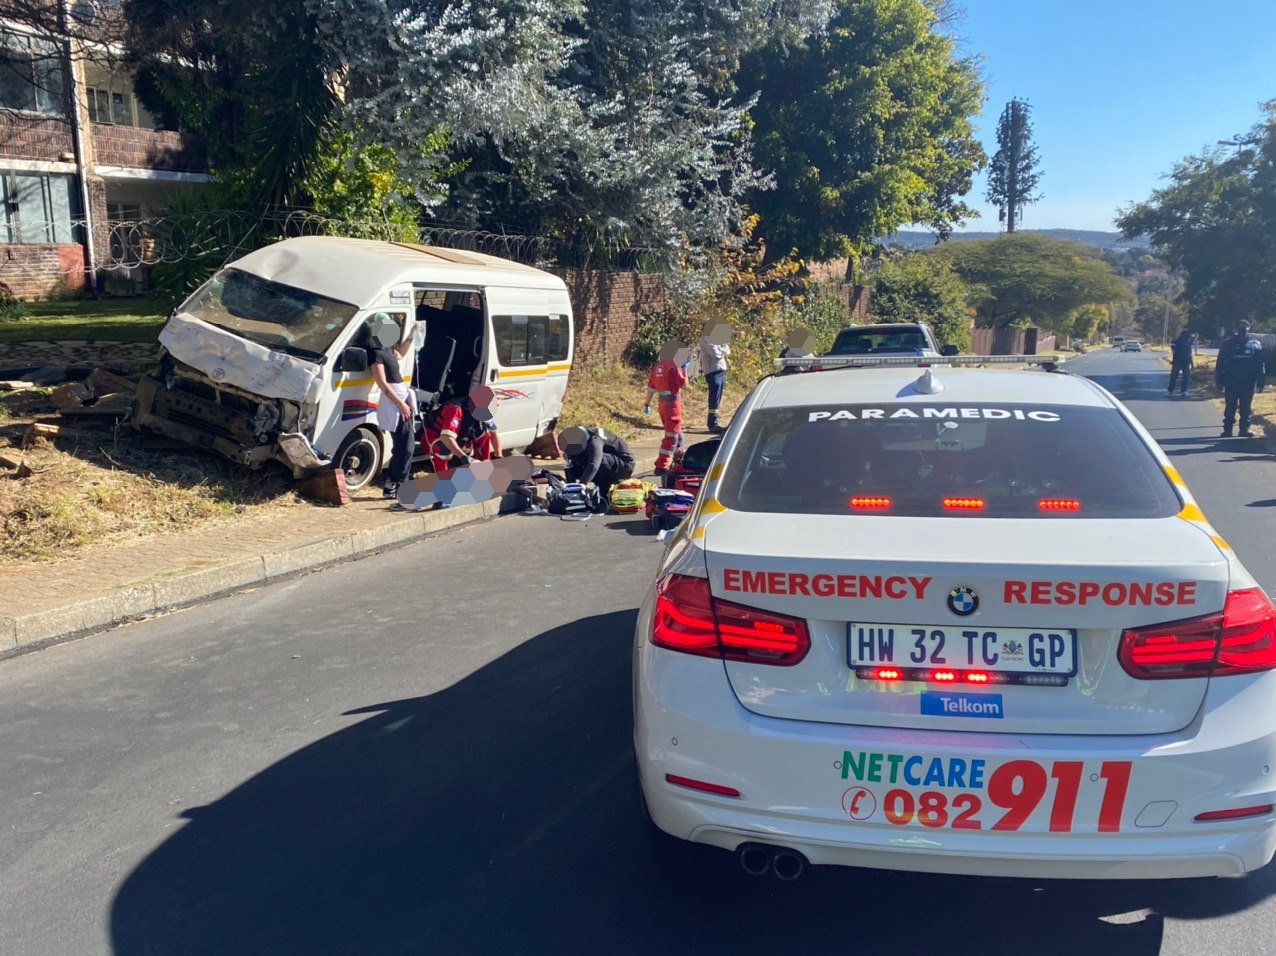 Gauteng: Taxi driver sustains serious injuries after crashing into wall.